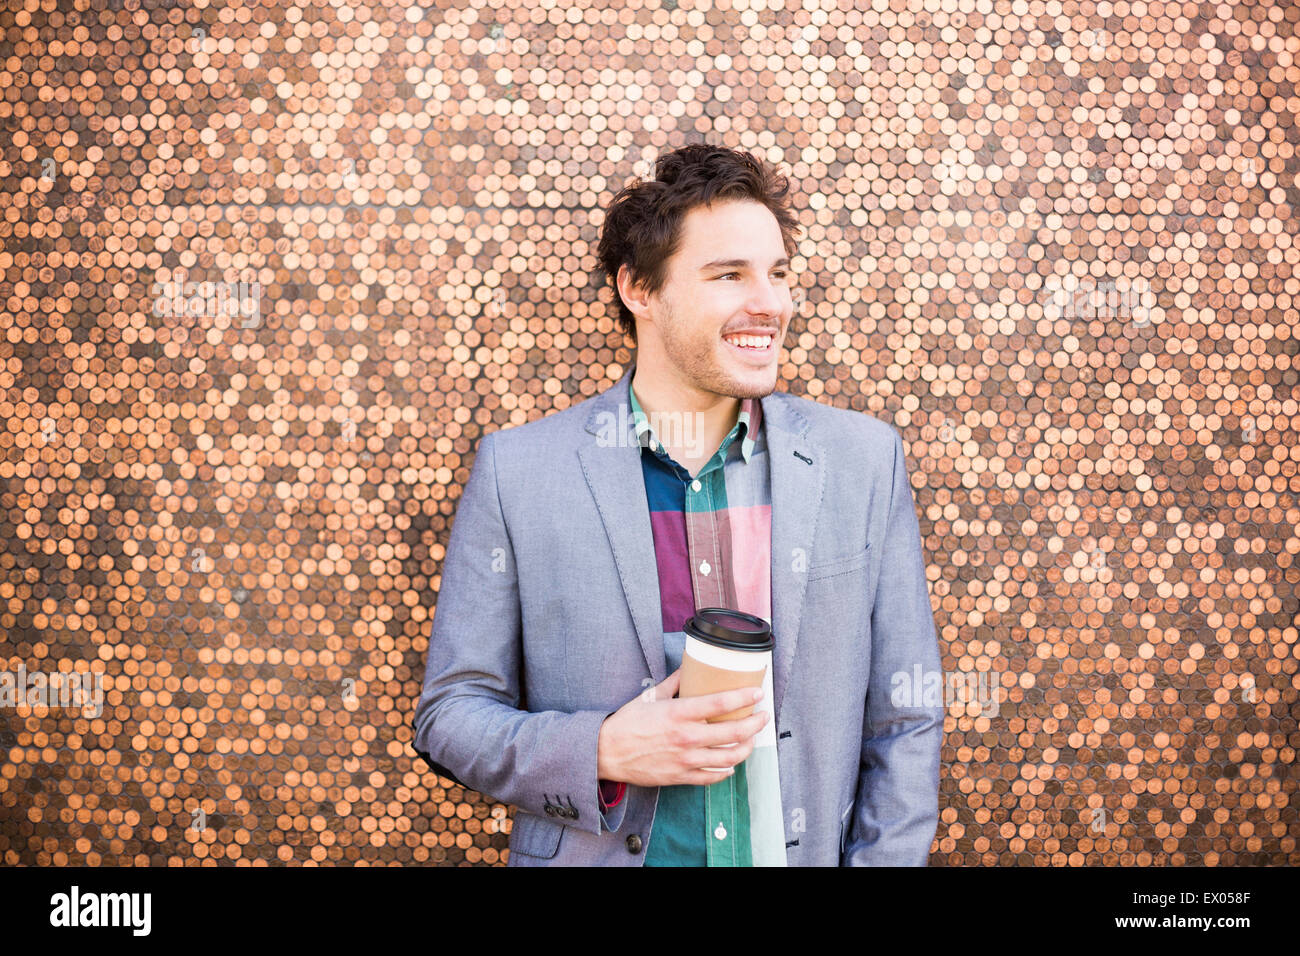 Young man by wall covered in coins - Stock Image